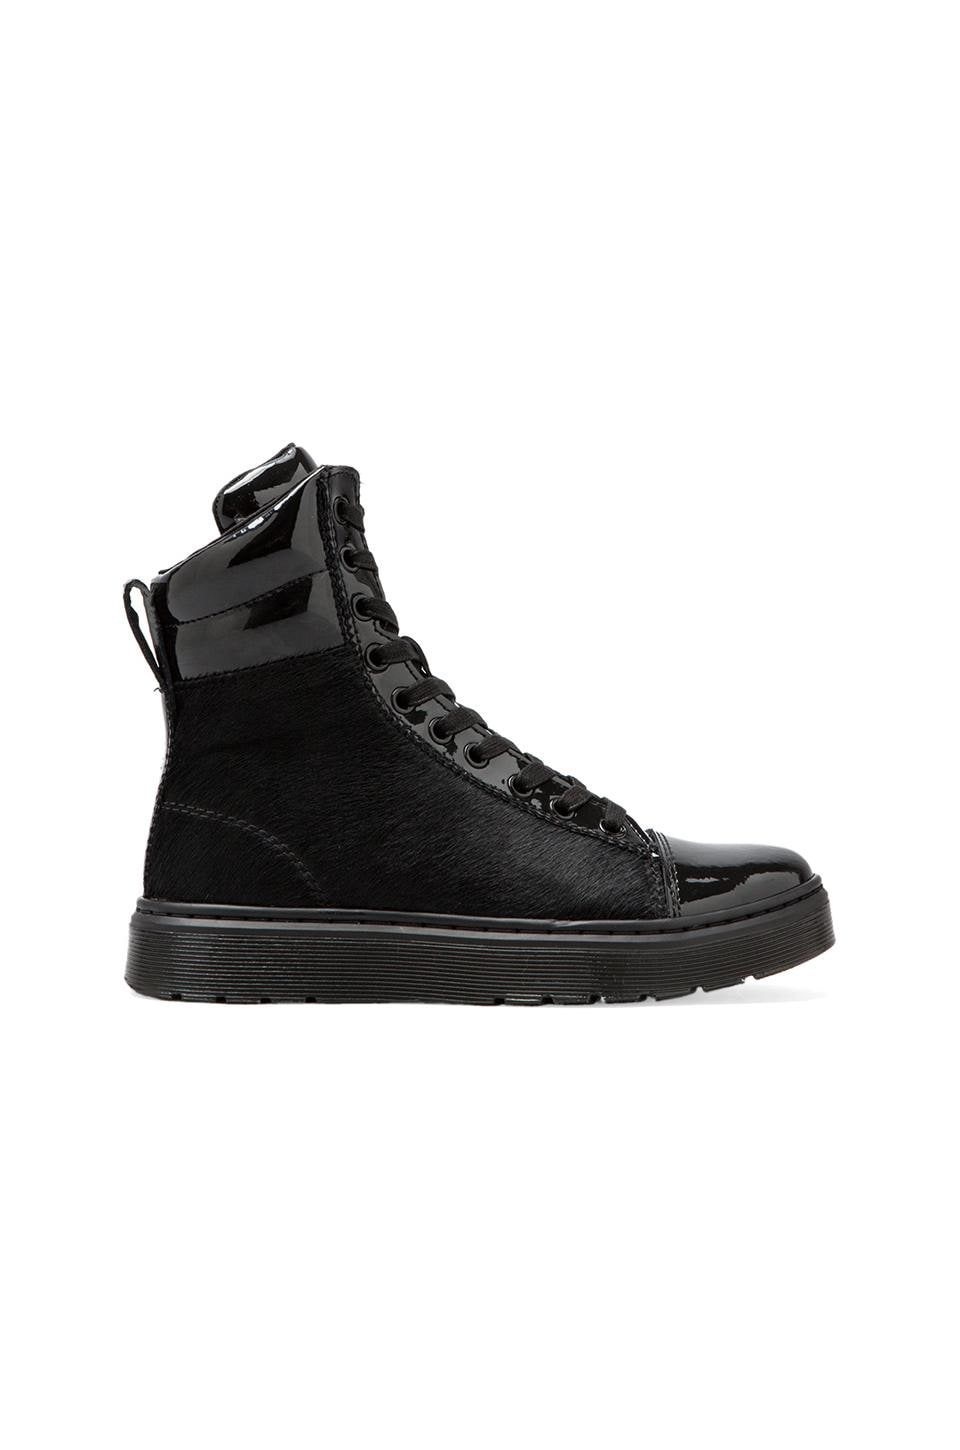 Dr. Martens Fade PC Hi Top Toe Cap with Calf Fur in Black